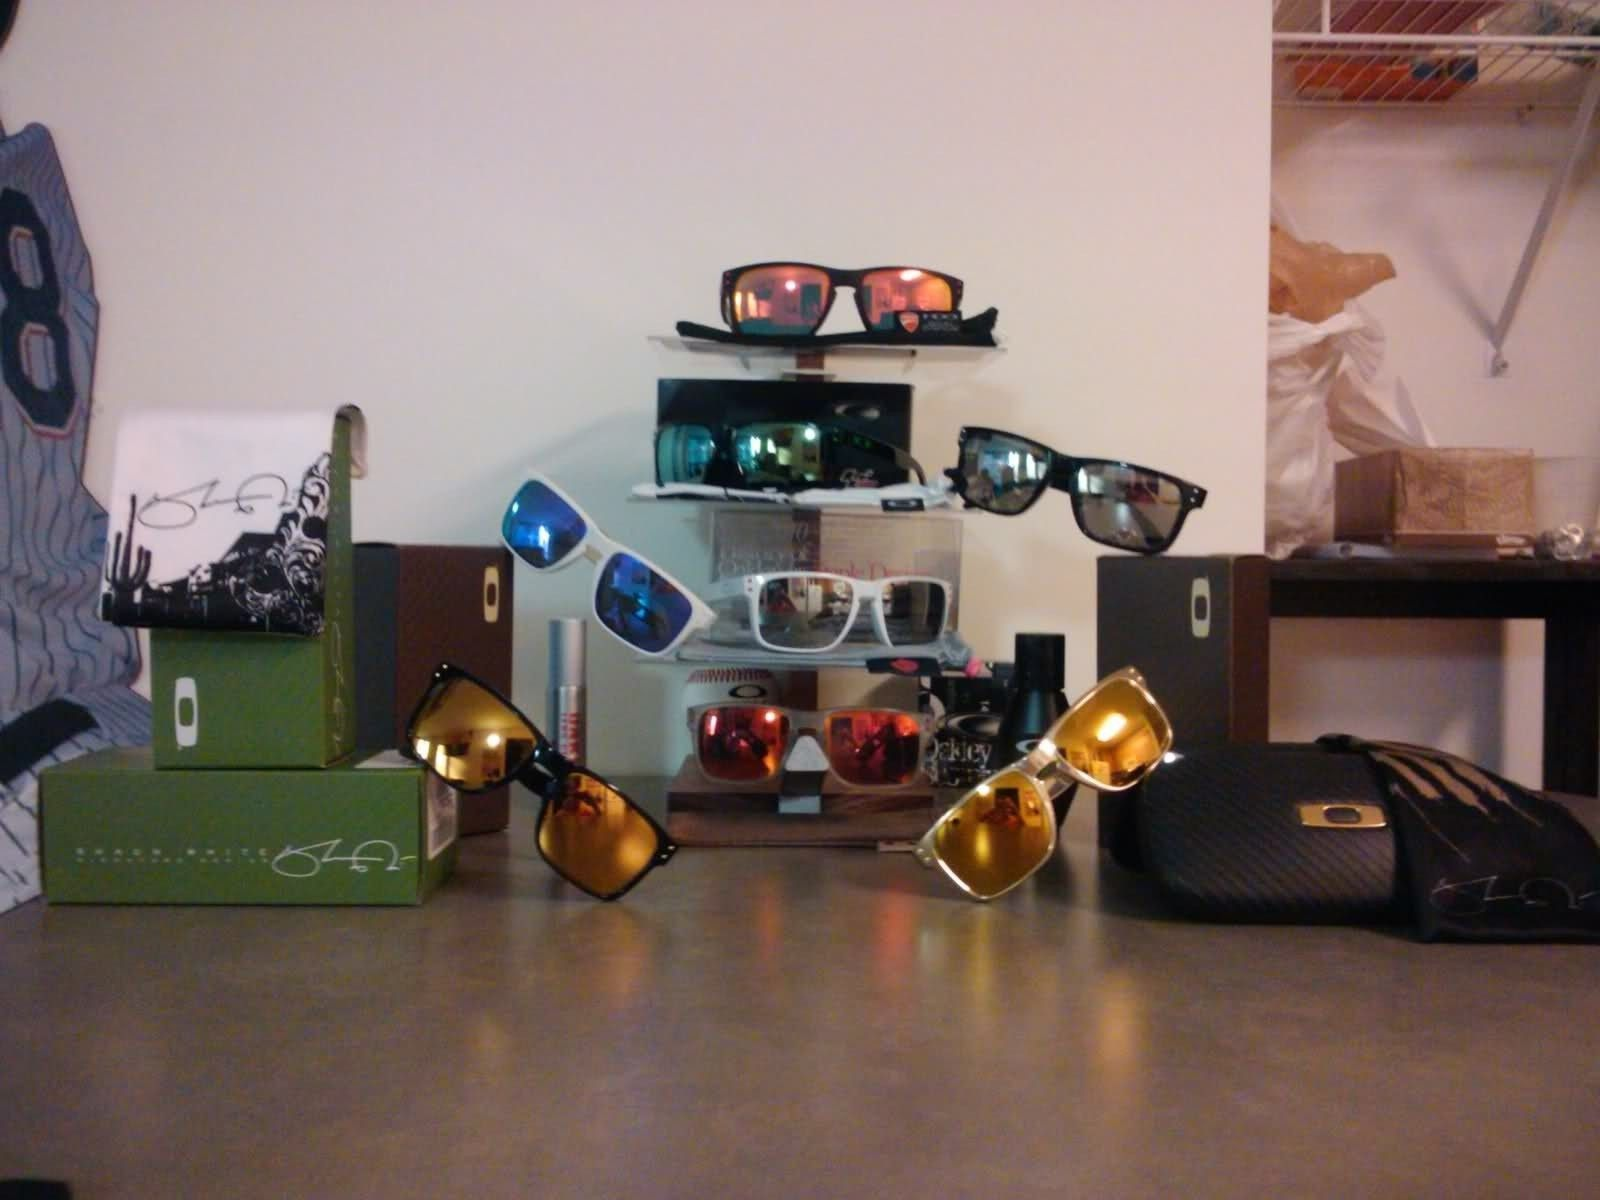 Its No Pond Of Frogs, But I Do Have A Whole Brook Of Sunnies! - 3134xad.jpg